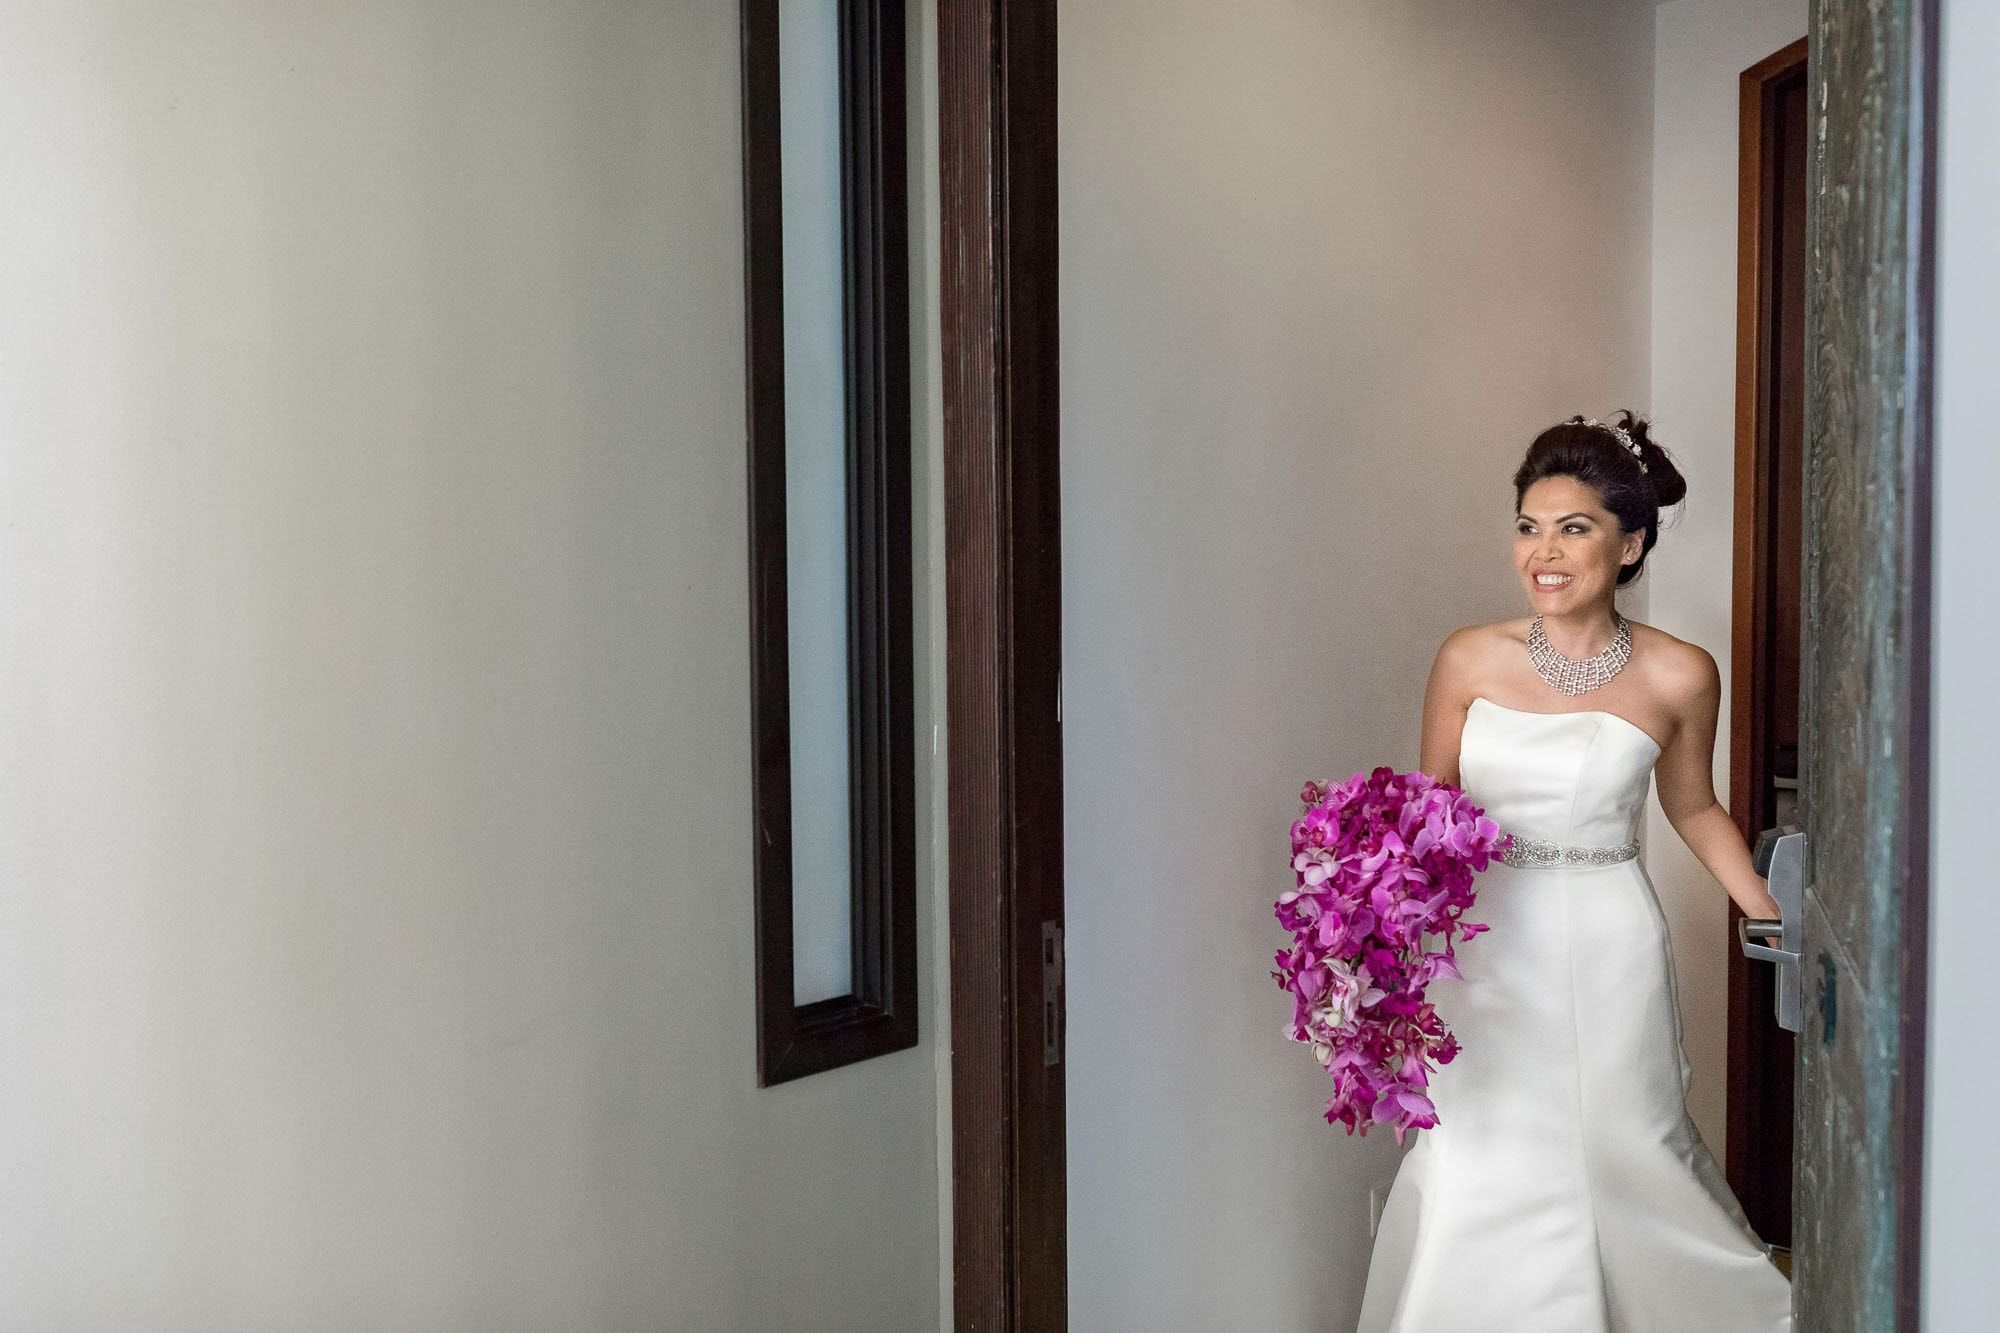 The bride is all ready and headed out for the first look.